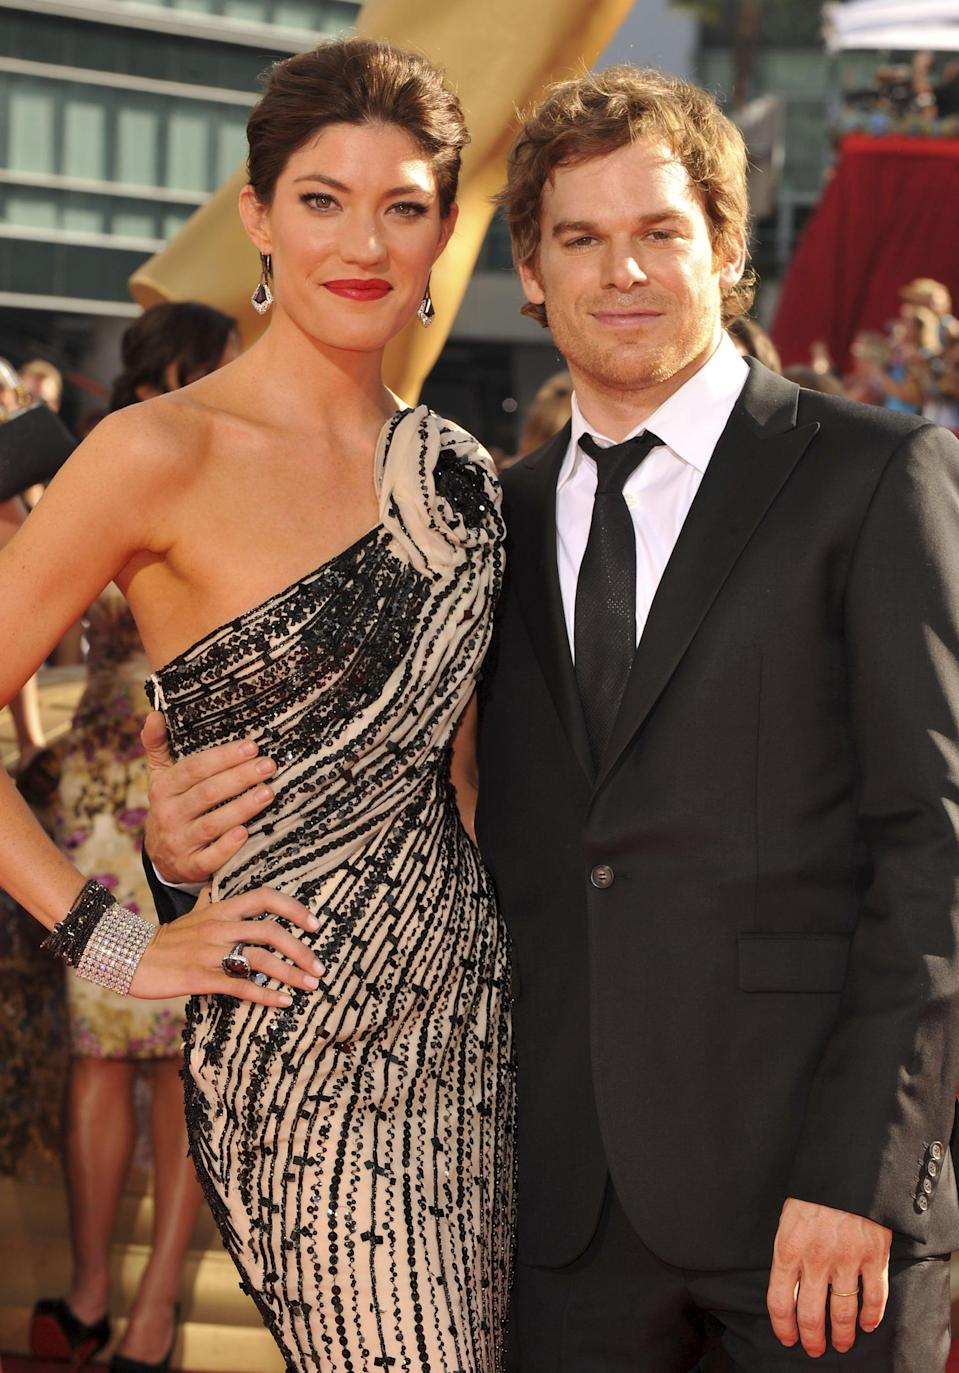 """<p>Though Jennifer and Michael played adoptive siblings Dexter and Debra on <strong>Dexter</strong>, that didn't stop the two from falling for each other. After meeting in 2006, the actors started dating during the show's second season and later tied the knot in 2008. The couple was married for two years before they decided to divorce in 2011, though they continued to star on the show (and even became onscreen lovers) until <strong>Dexter</strong> ended in 2013. </p> <p>In September 2013, <a href=""""http://www.usmagazine.com/celebrity-news/news/jennifer-carpenter-tears-up-talking-about-michael-c-hall-divorce-at-dexter-event-2013139/"""" class=""""link rapid-noclick-resp"""" rel=""""nofollow noopener"""" target=""""_blank"""" data-ylk=""""slk:Jennifer got emotional while discussing their divorce"""">Jennifer got emotional while discussing their divorce</a> at the PaleyFest<strong> Dexter</strong> Fall Farewell event. """"Our marriage didn't look like anyone else's, and our divorce didn't either,"""" she said, later adding, """"I said it before - just because the marriage ended doesn't mean the love did."""" </p>"""